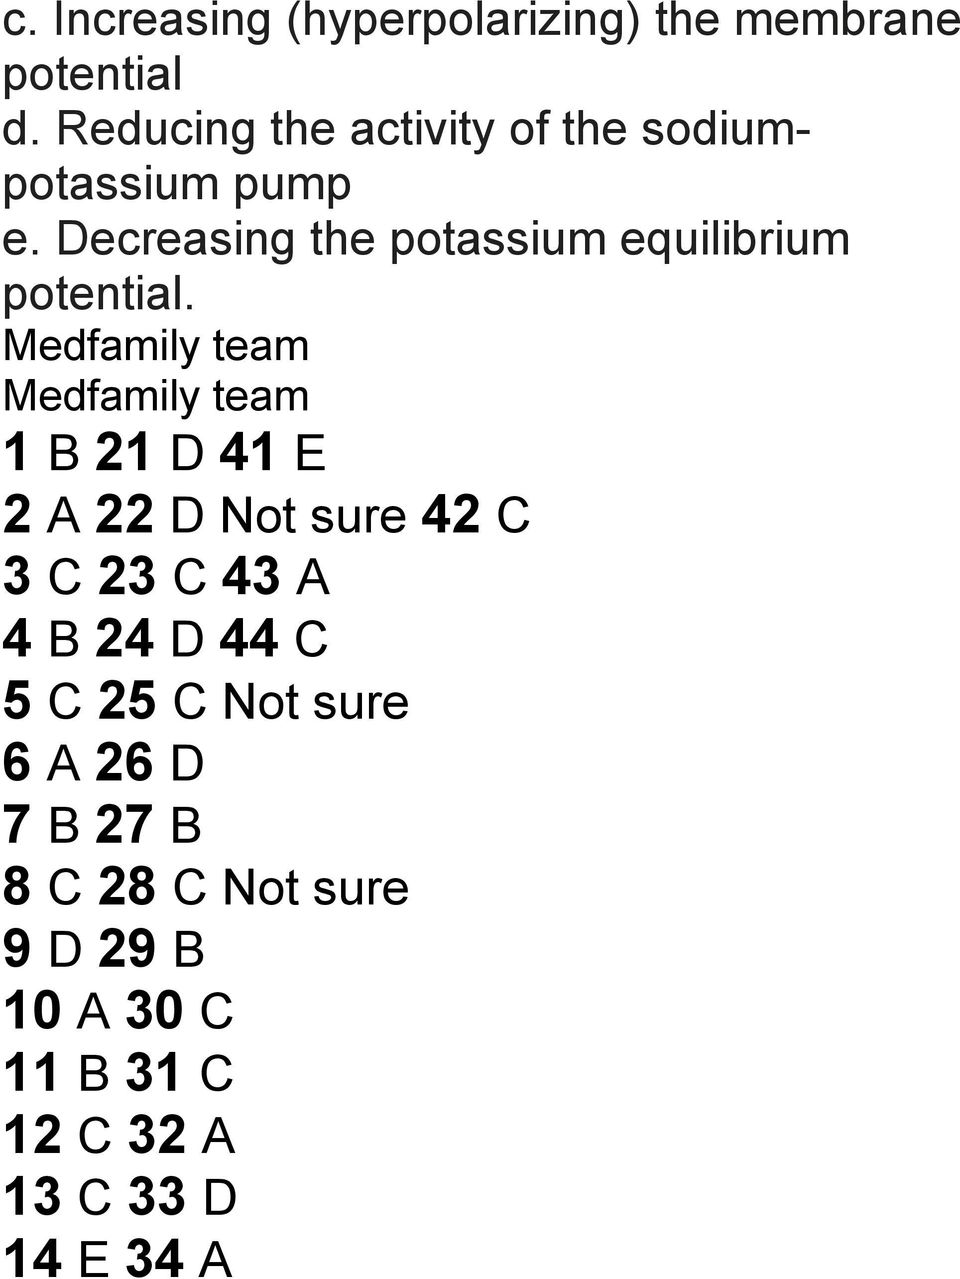 Decreasing the potassium equilibrium potential.